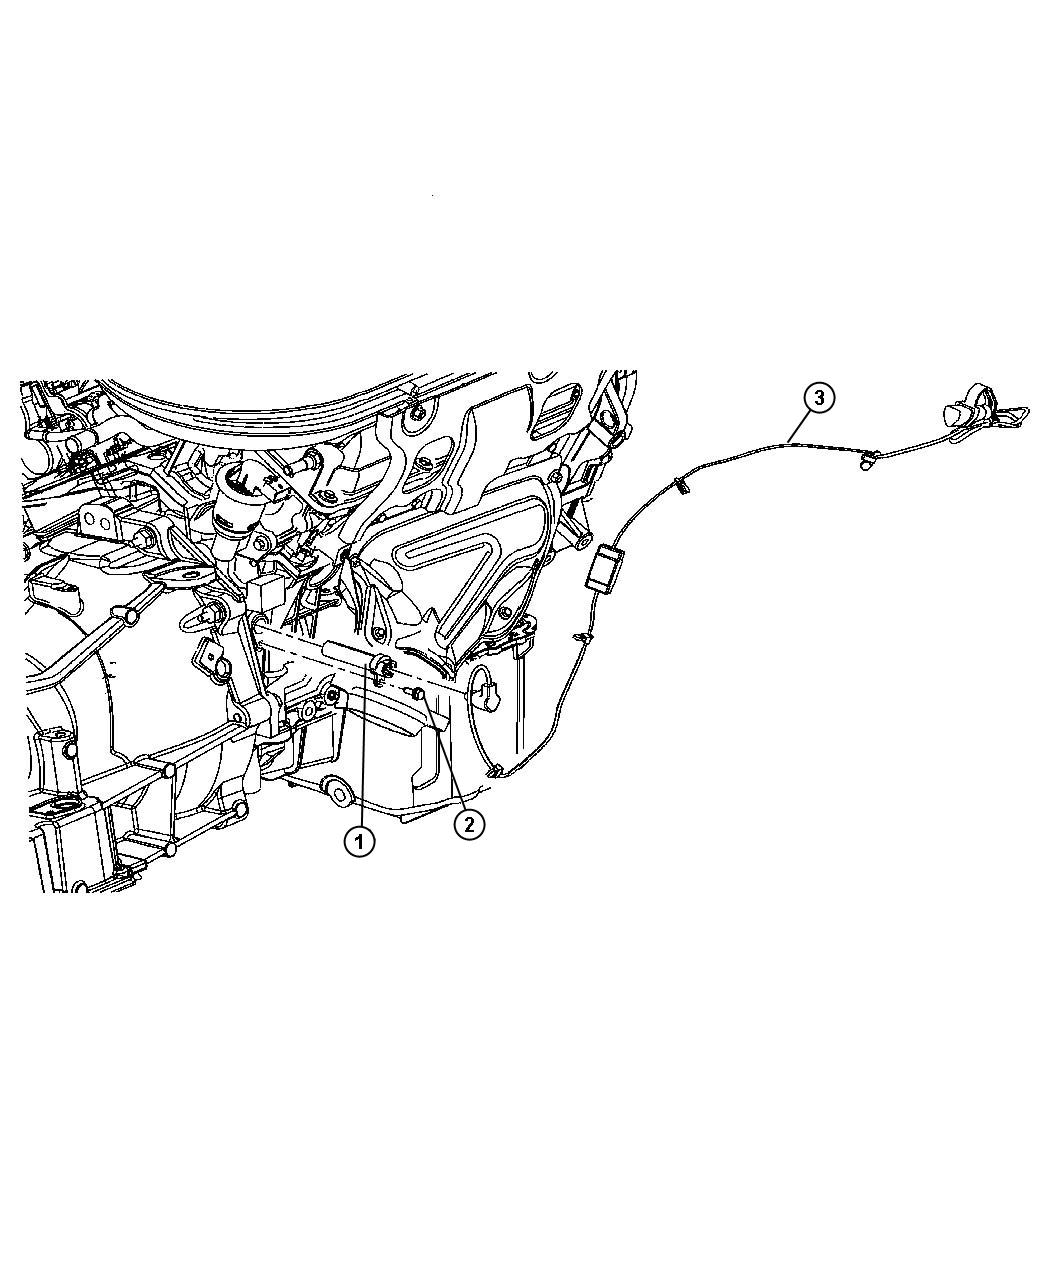 2006 Chrysler Pacifica Cord. Engine block heater. 3.5l